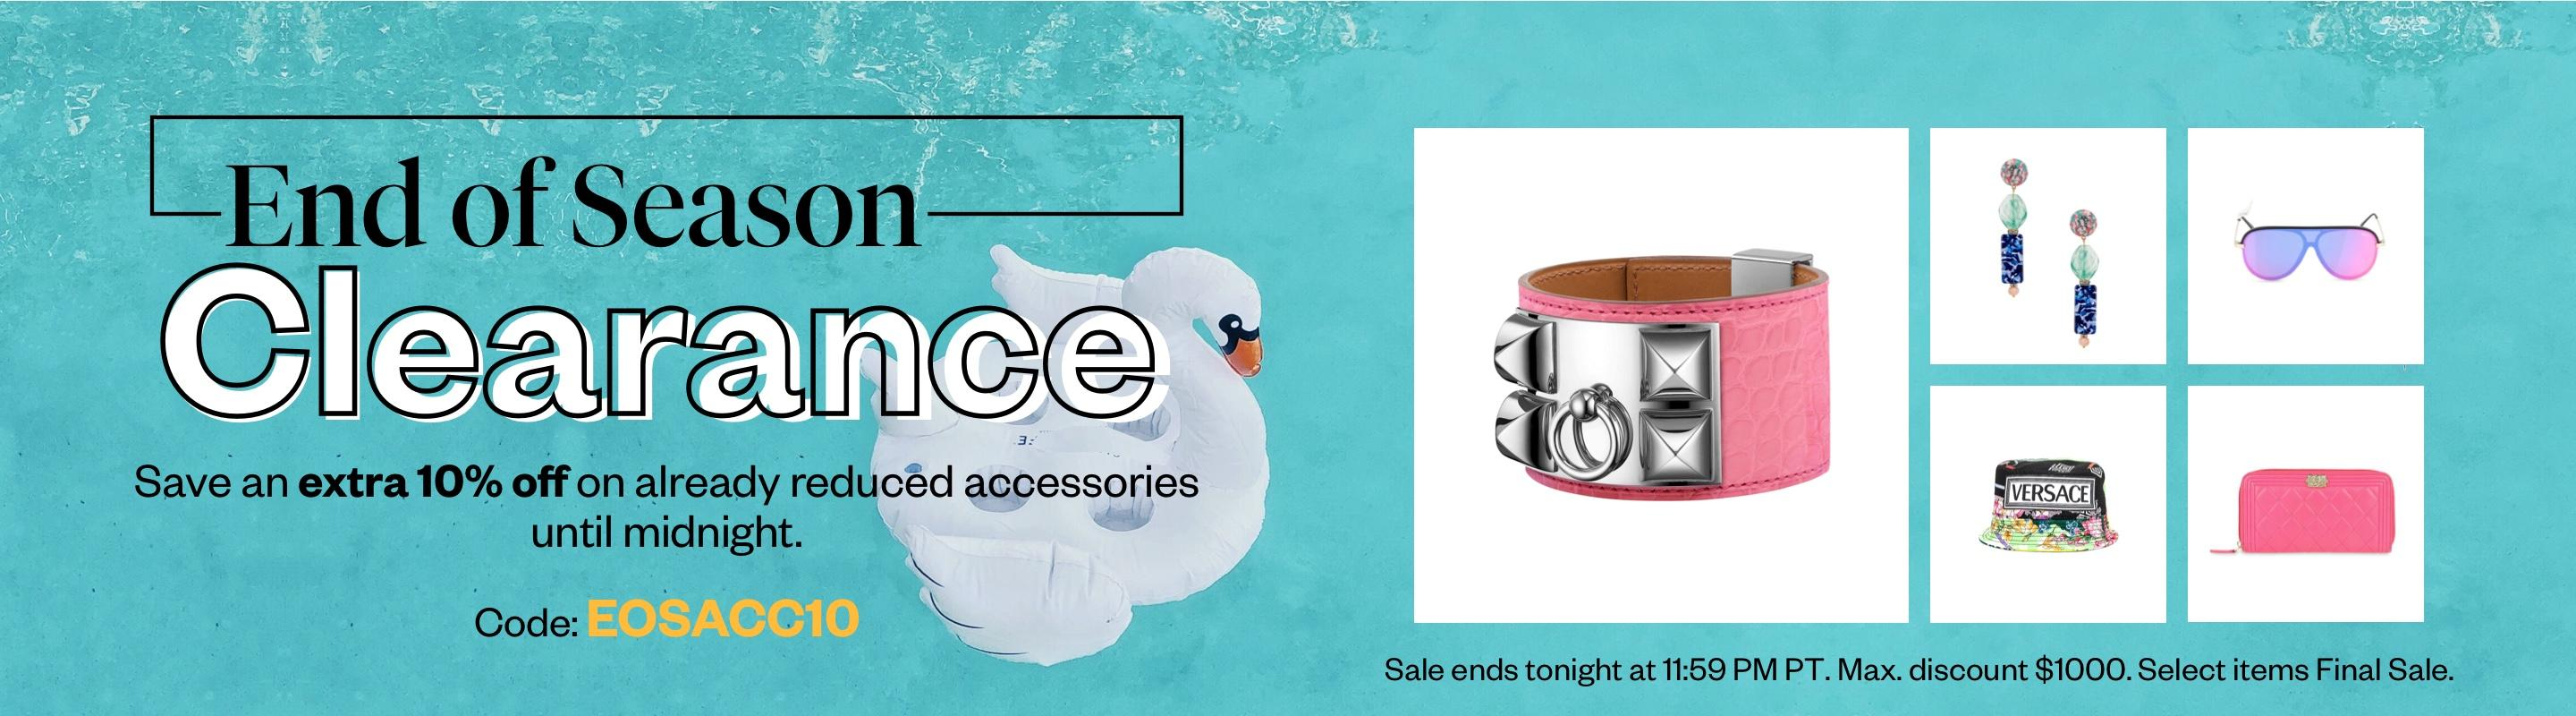 End Of Season Clearance: Accessories